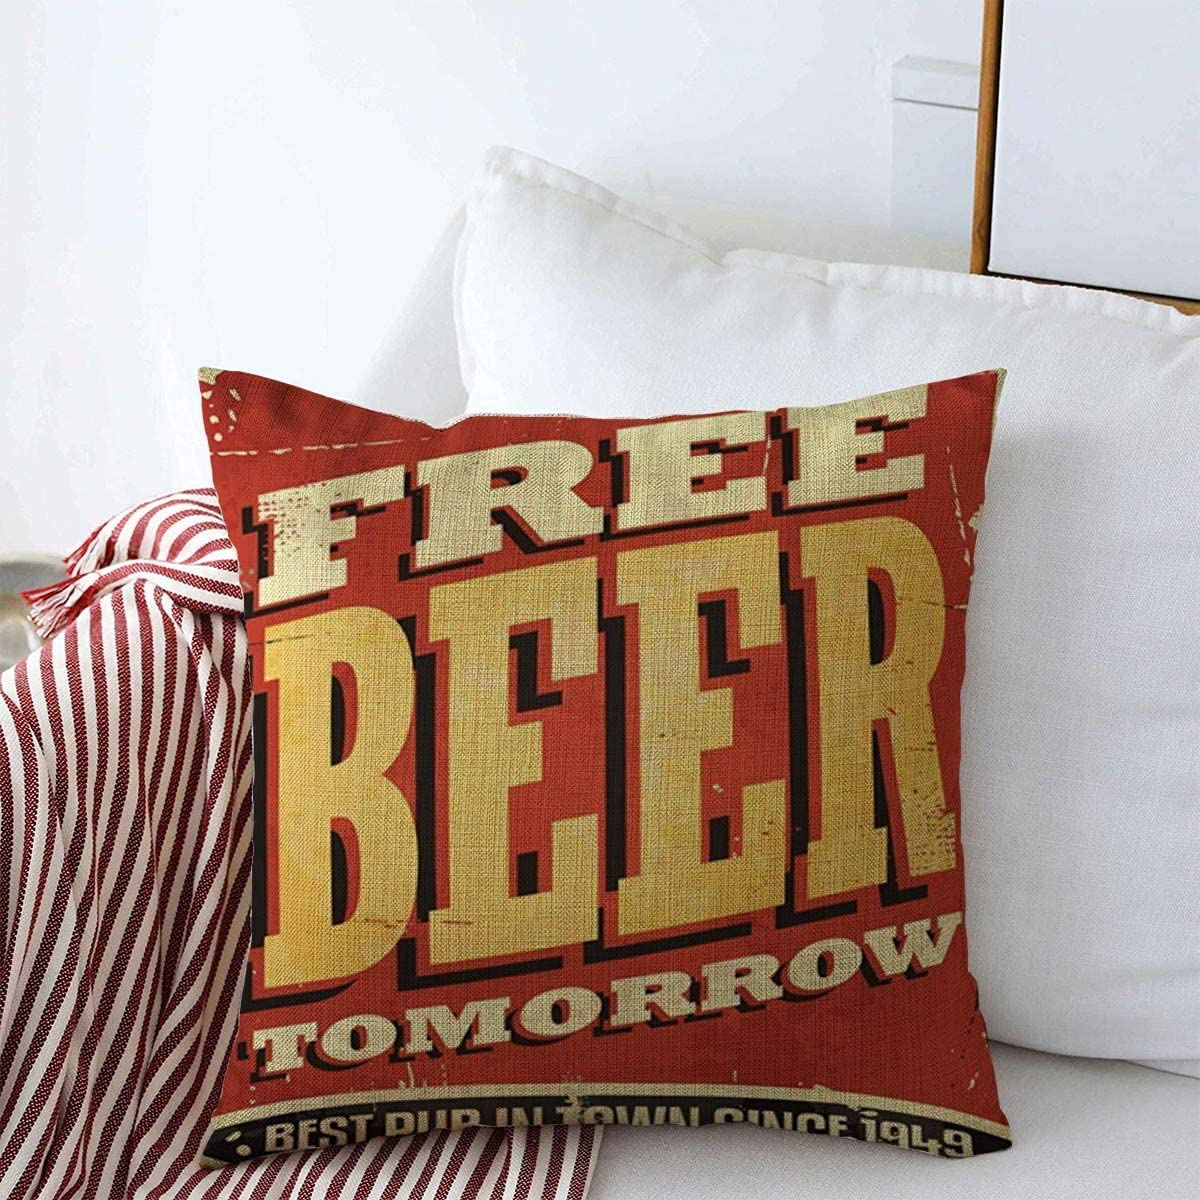 Staroden Throw Pillows Cover 18 x 18 Inches Red Diner Ale Cheers Retro Free Beer Tomorrow Vintage Tin Food Drink Pub Bar Alcohol Quote Old Tavern Cushion Case Cotton Linen for Fall Home Decor